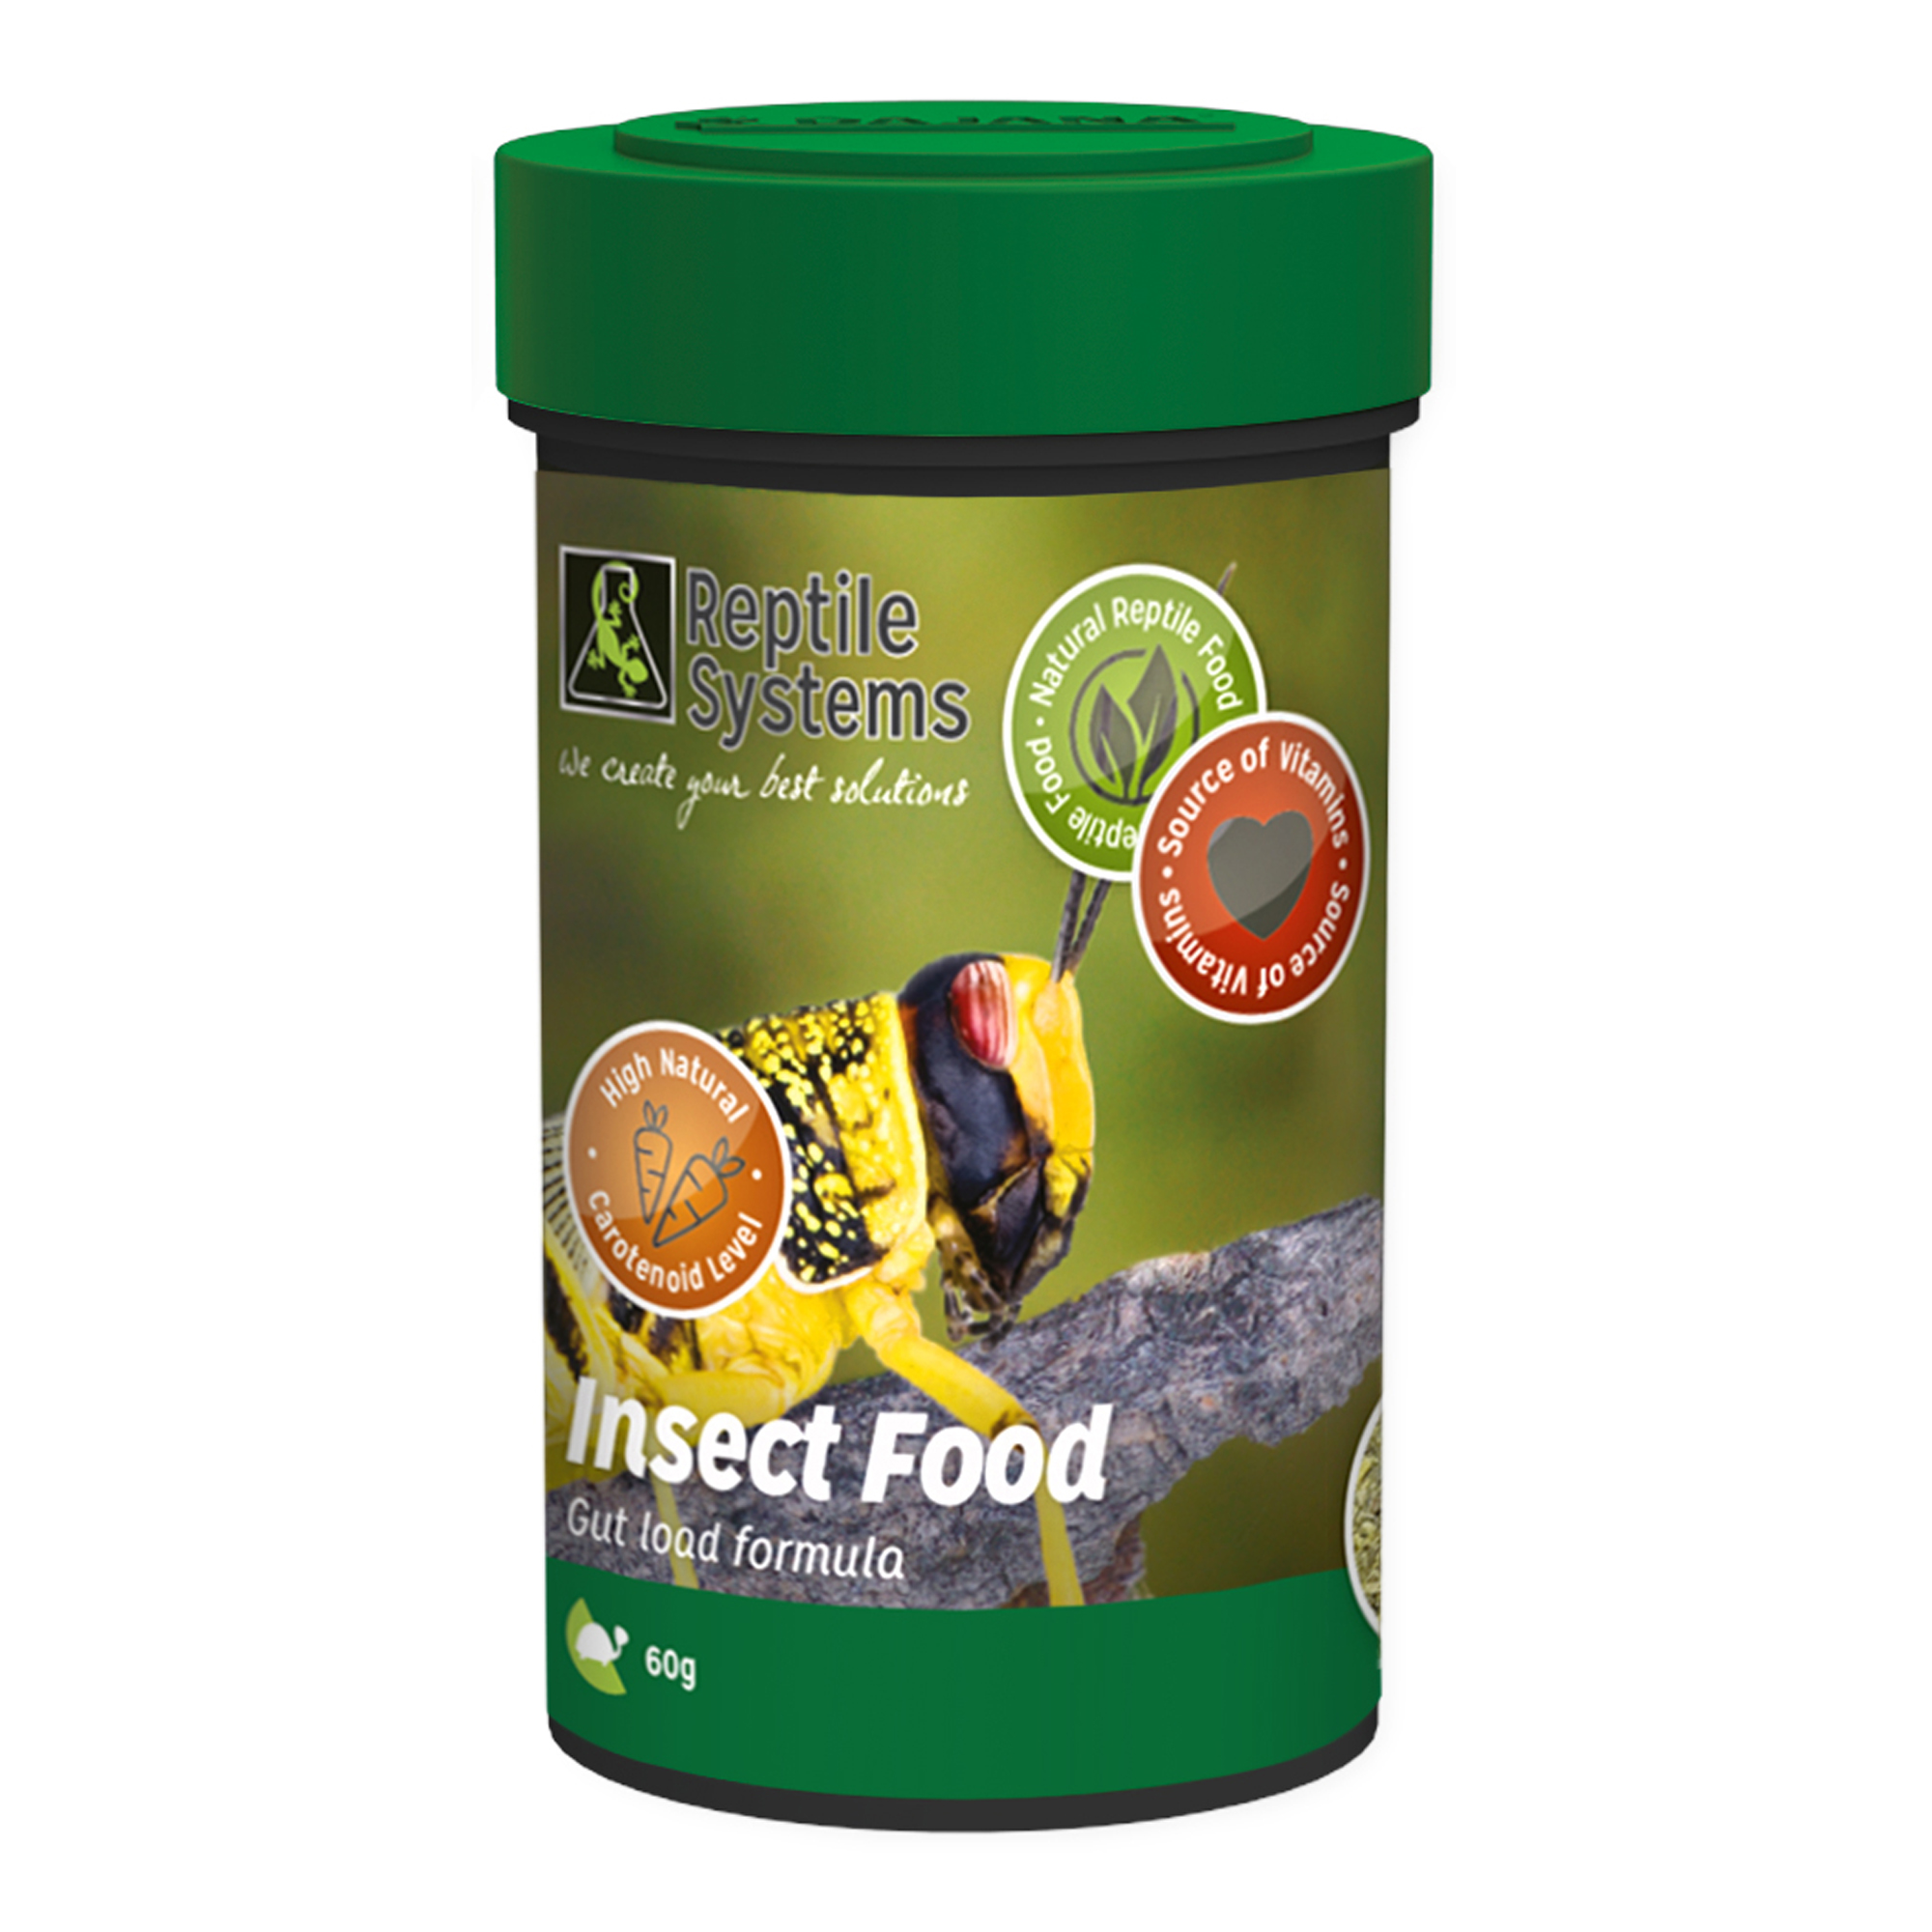 Insect Food UK